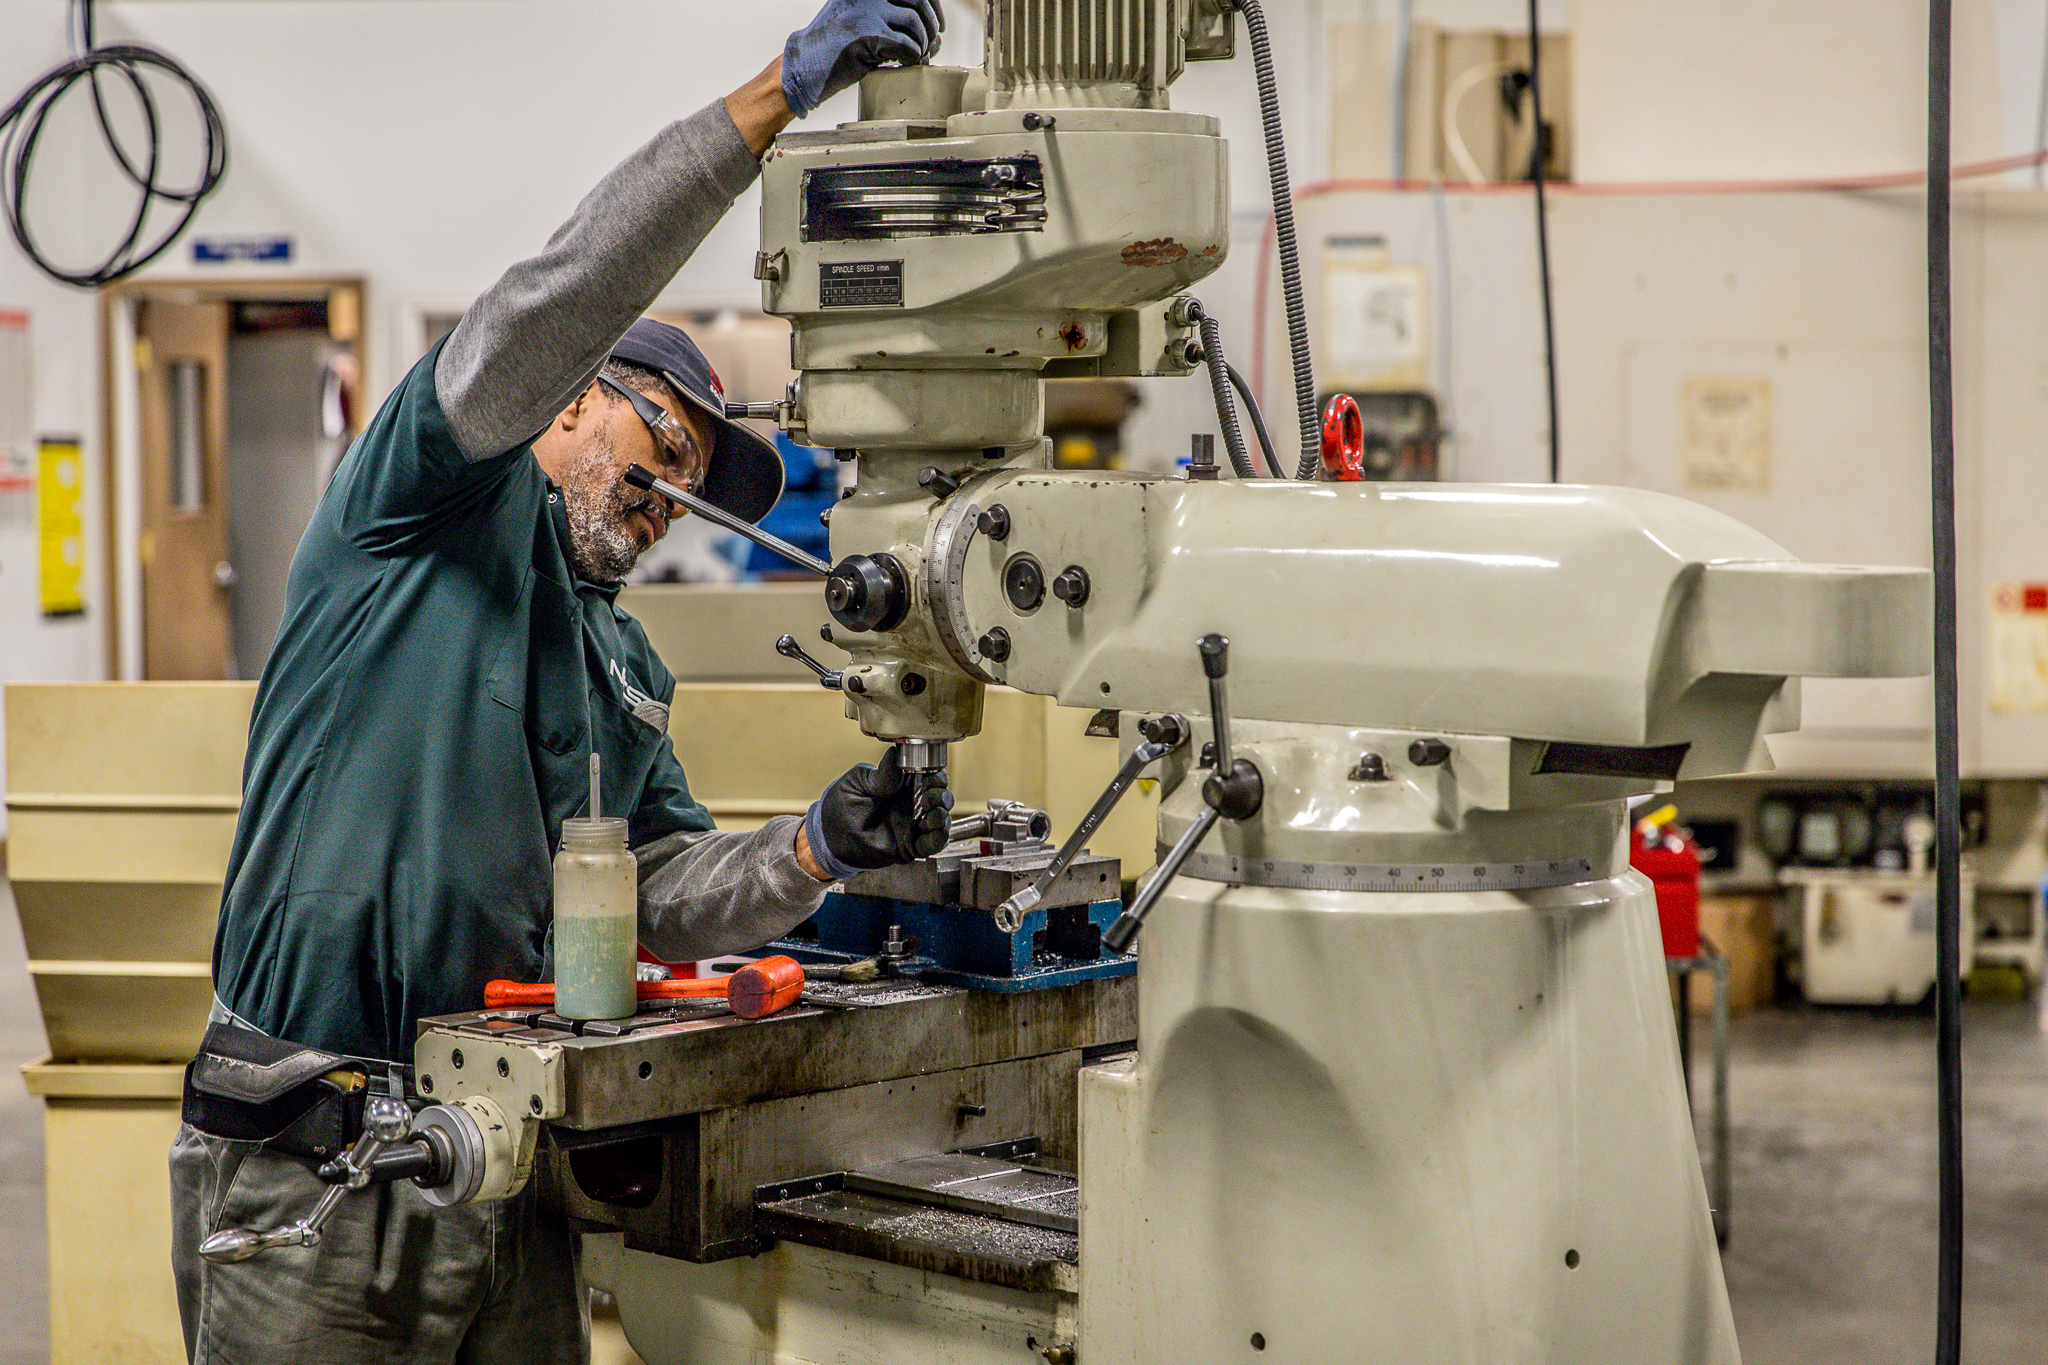 """Machinist Technology - The Machinist Technology program is geared to provide the beginning machinist with the abilities, skills and techniques for entry-level positions in the field of machine trades. Students will be exposed to a combination of classroom theory and """"hands-on"""" projects that will enable them to quickly develop the skills needed in the machine trades field."""